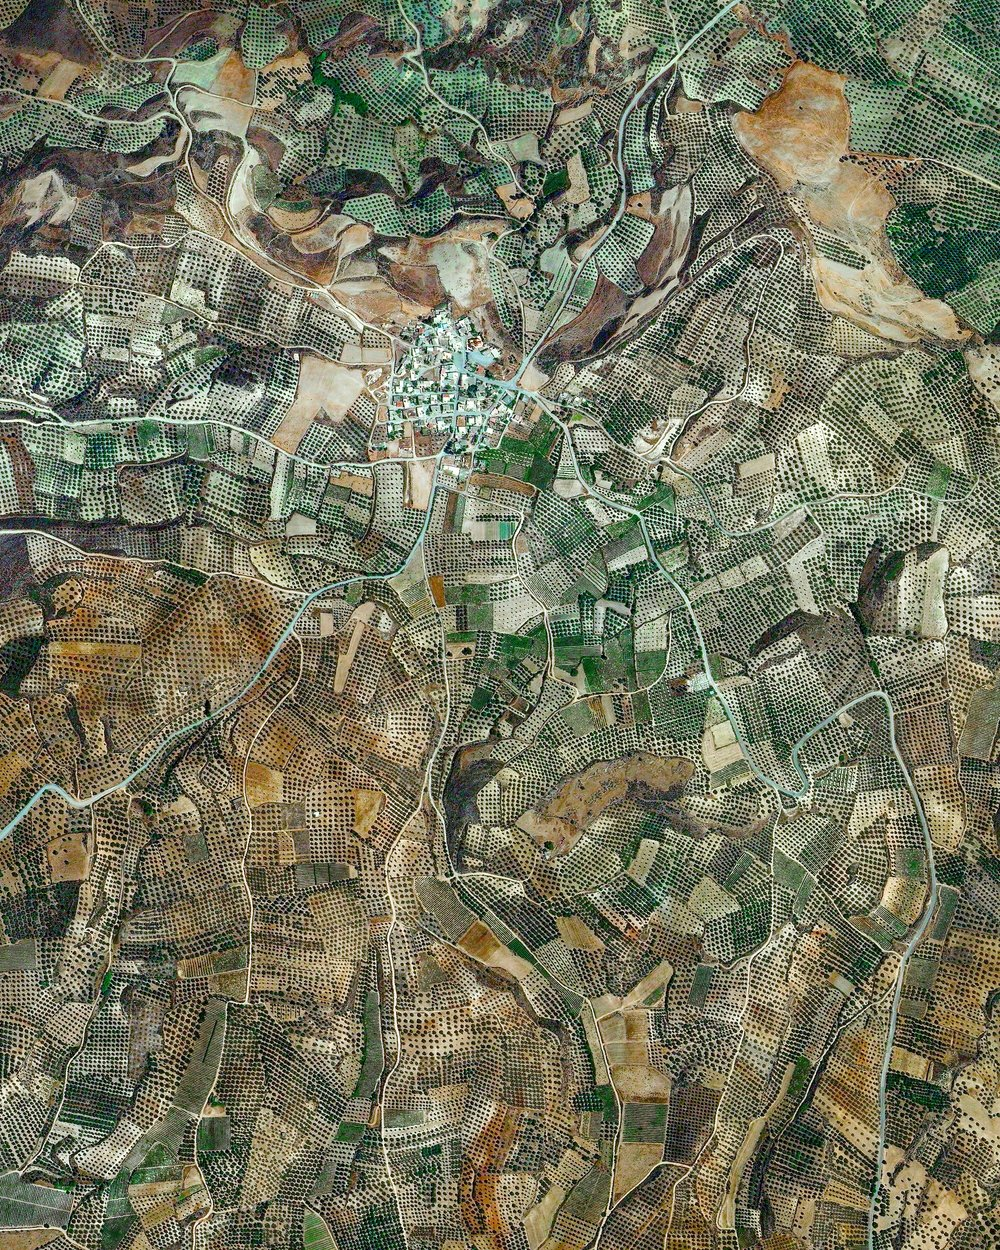 Olive tree groves surround the village of Ινία, Greece. Approximately 90% of all harvested olives are turned into oil; the remaining 10% are eaten as table olives.  35.0785246, 25.0473918  Source imagery: DigitalGlobe